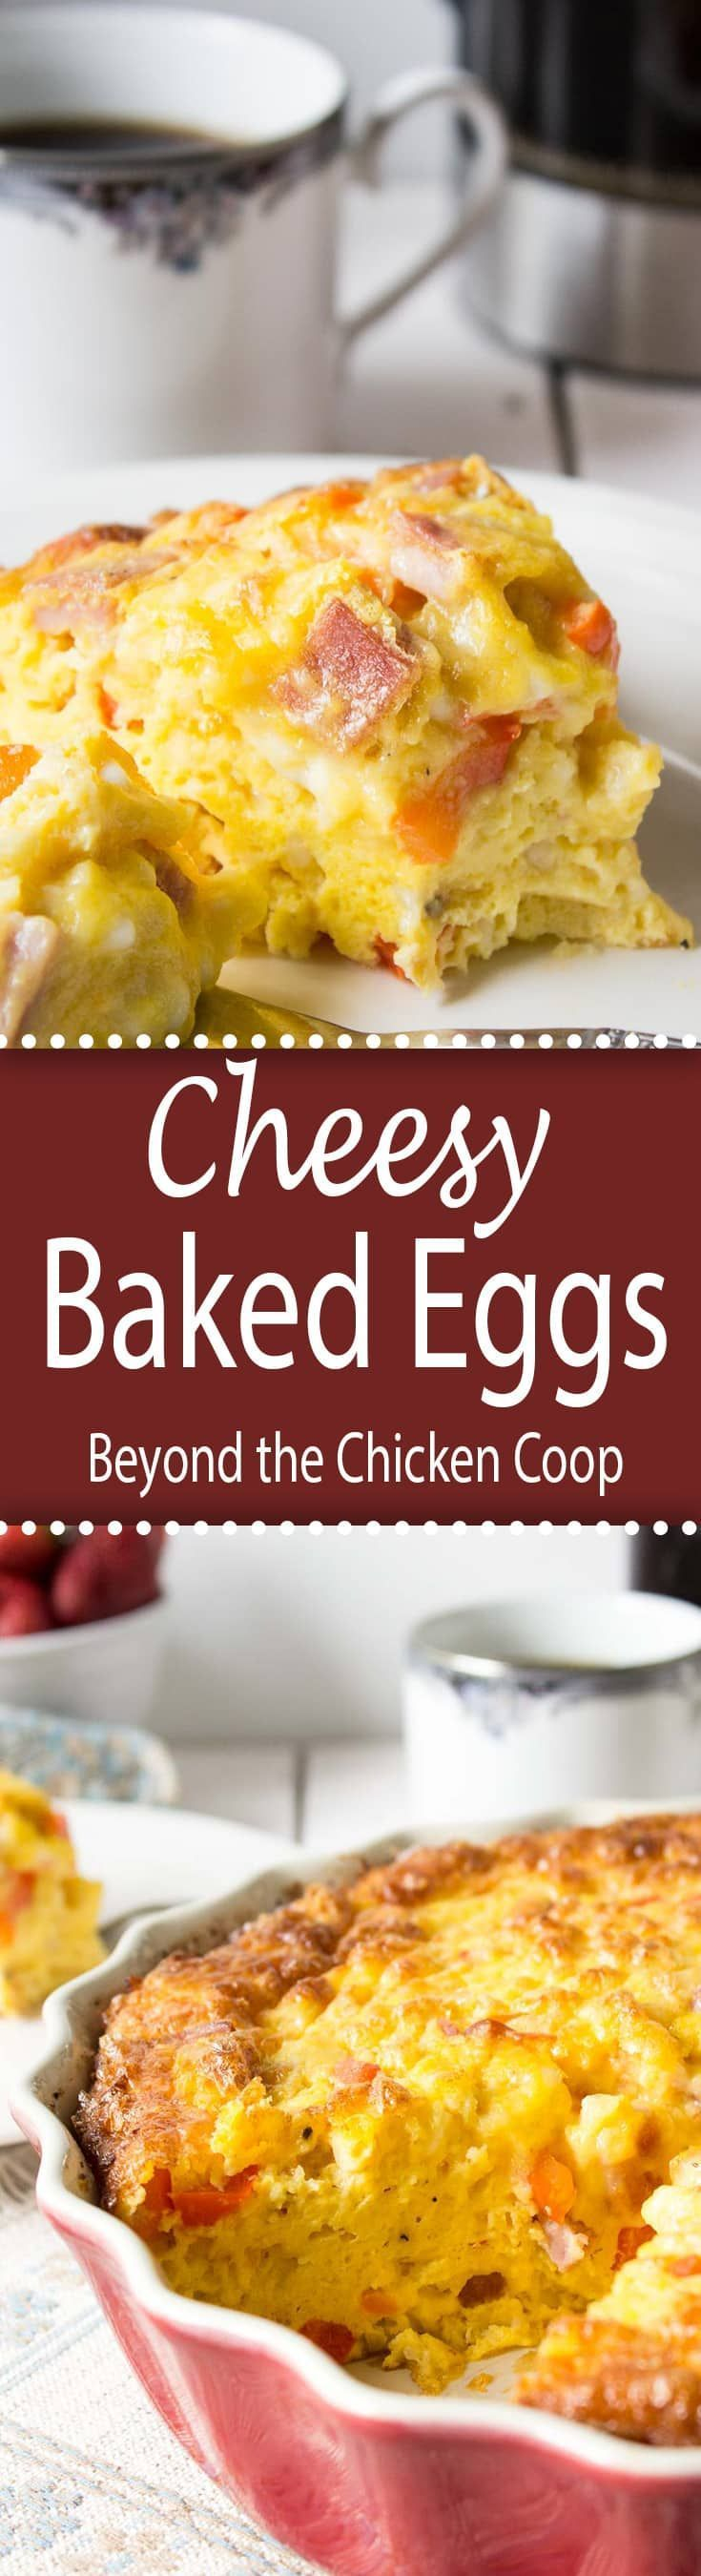 Cheesy Baked Eggs are perfect for breakfast or brunch!